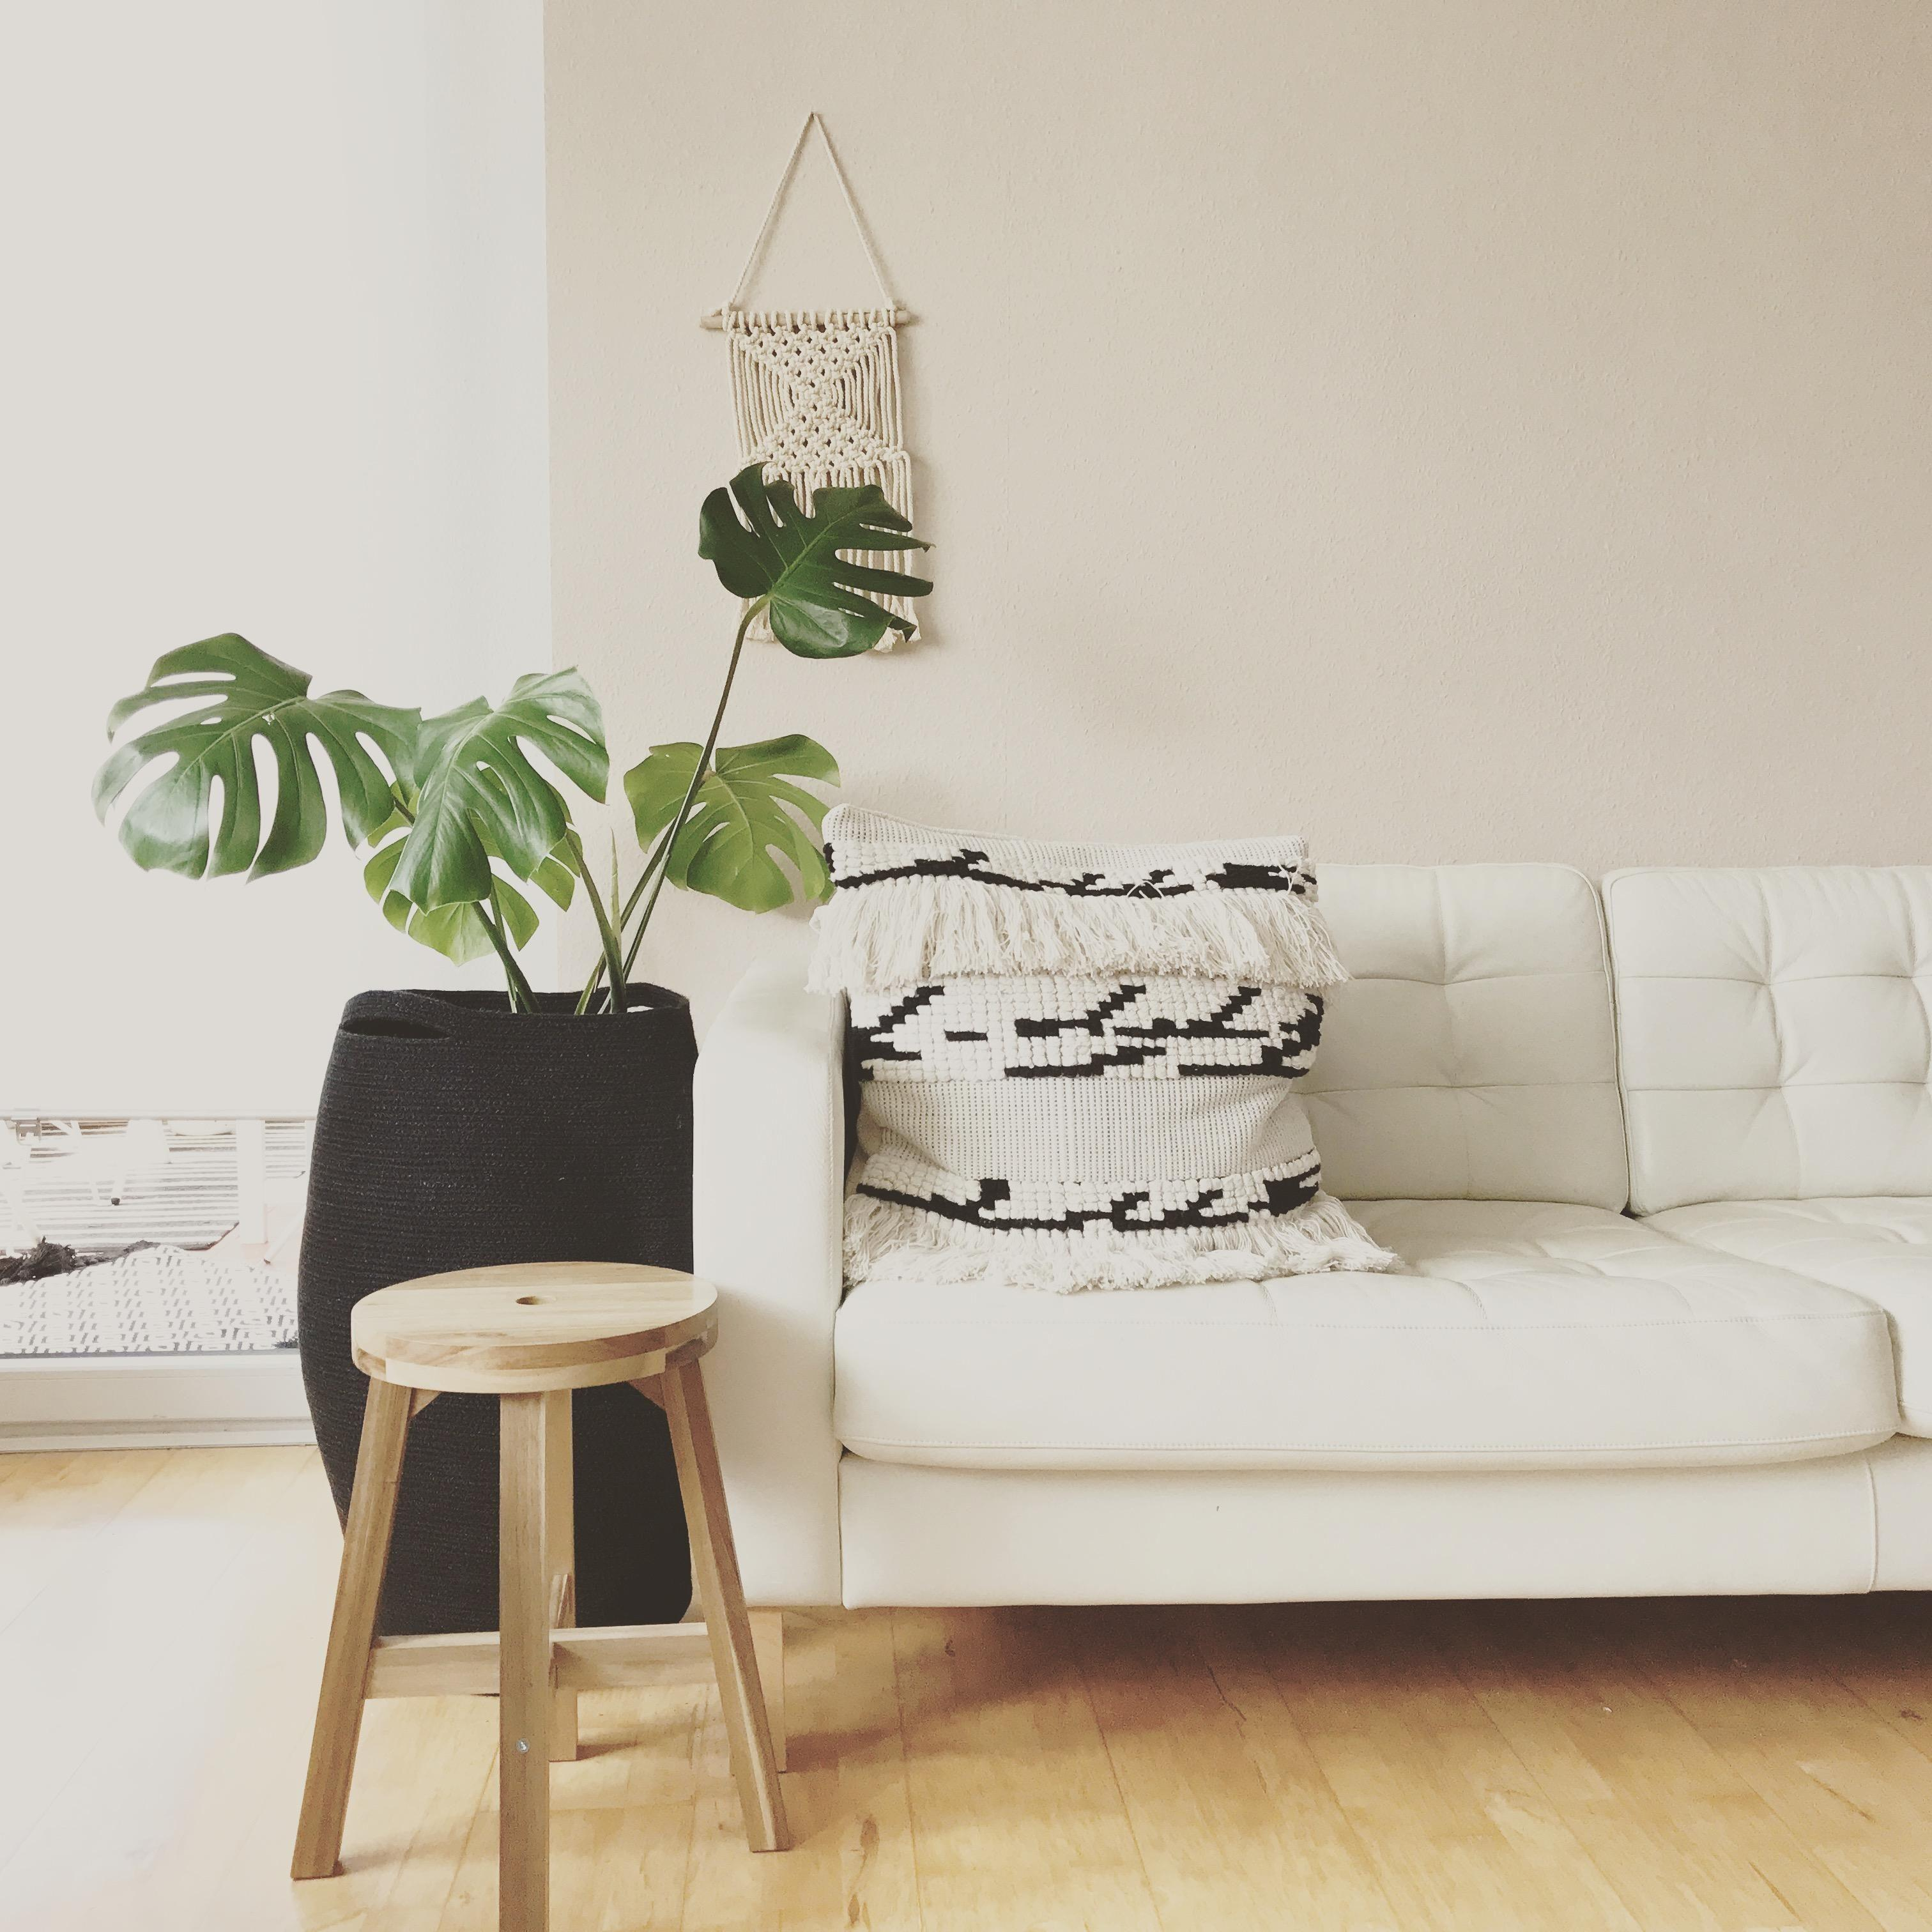 Monsteraliebe.